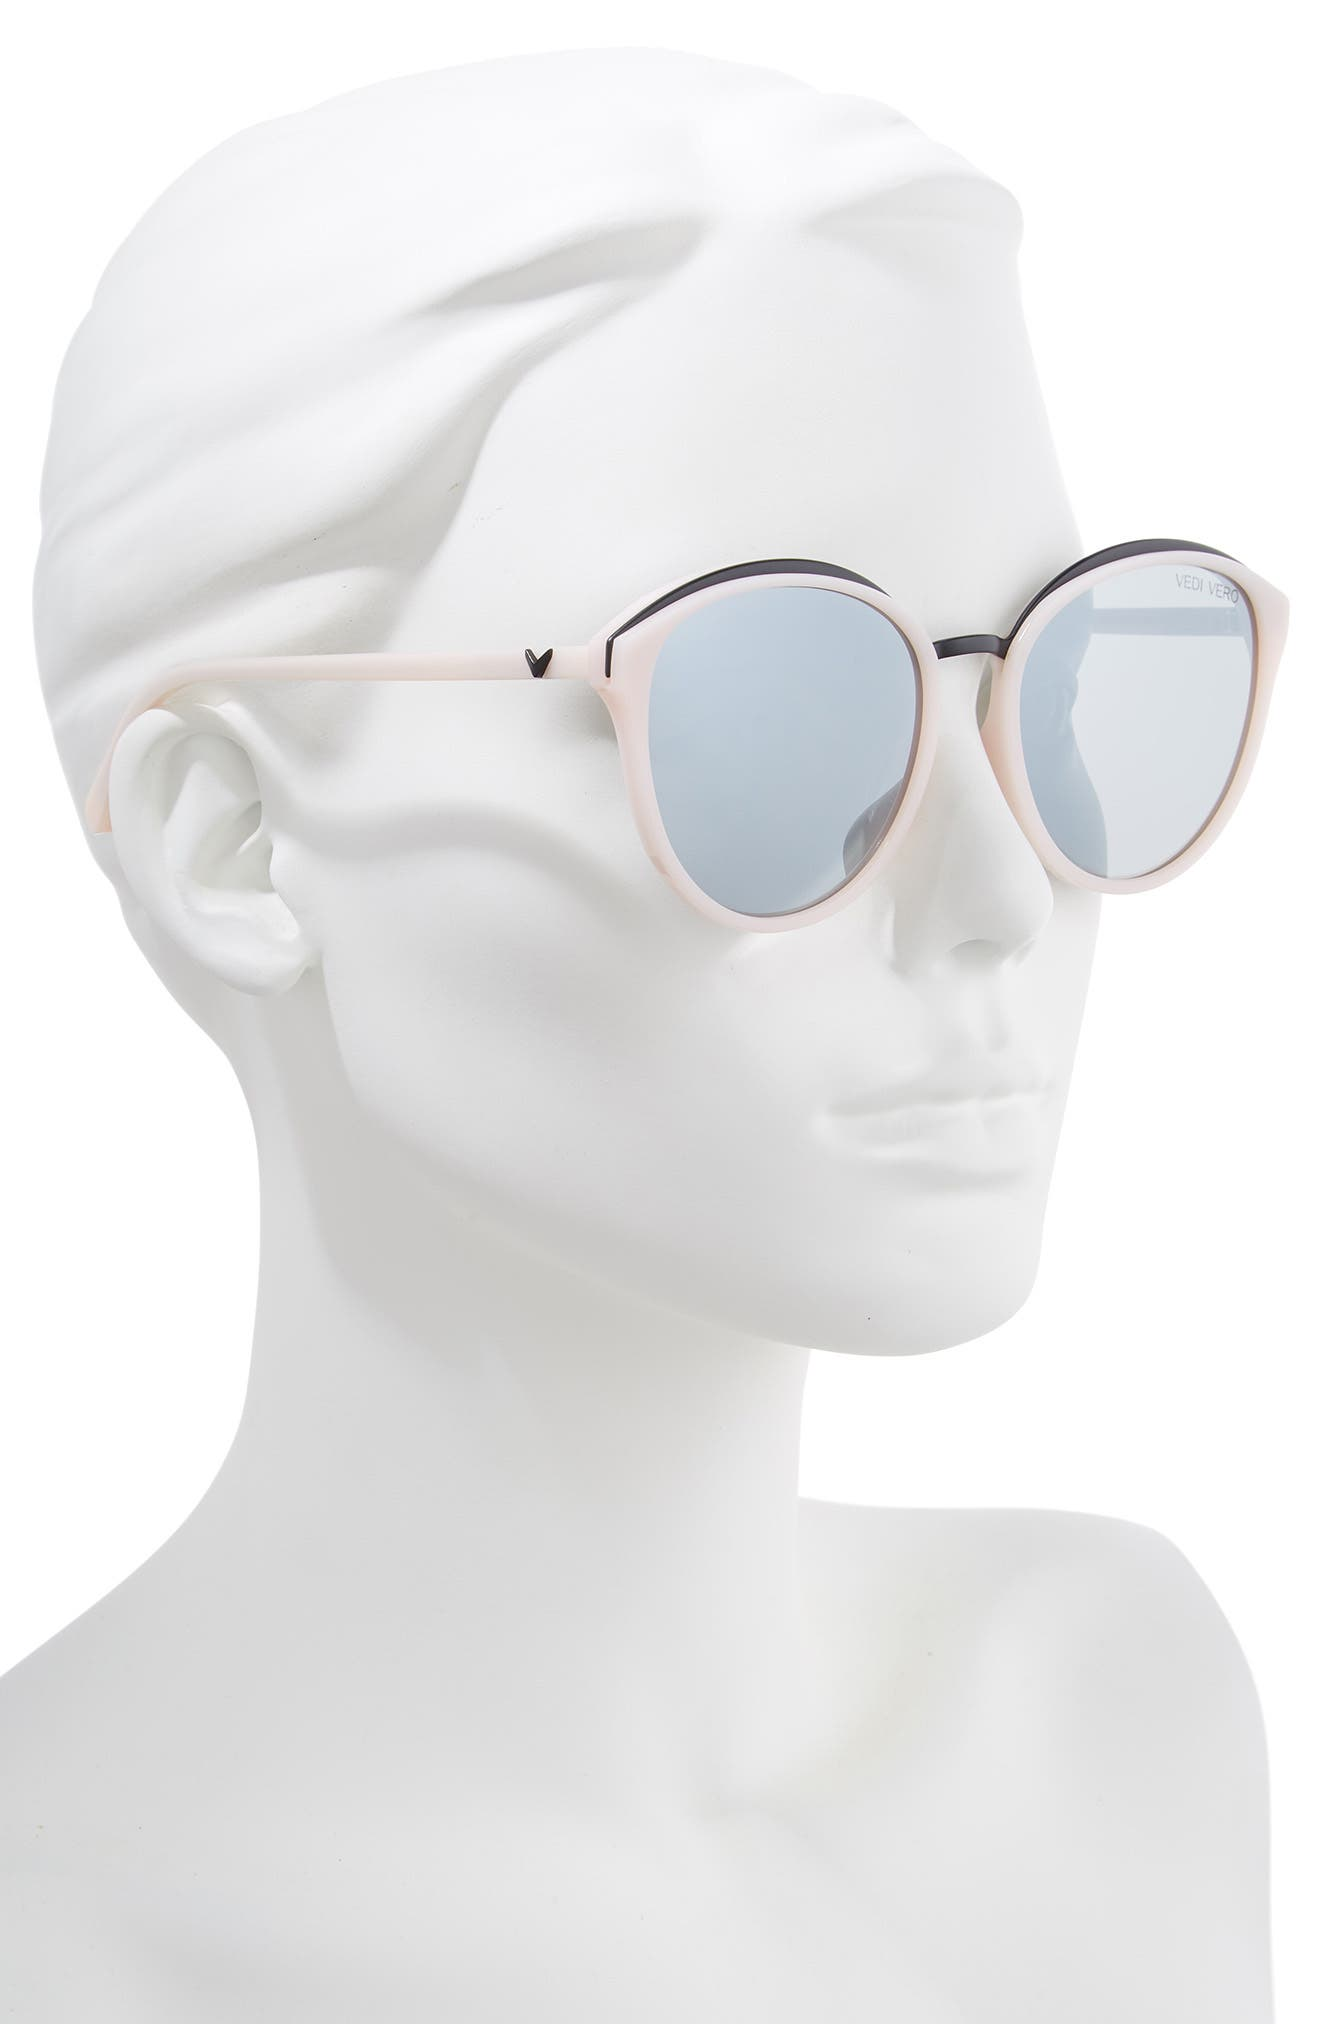 59mm Mirrored Round Cat Eye Sunglasses,                             Alternate thumbnail 2, color,                             PINK